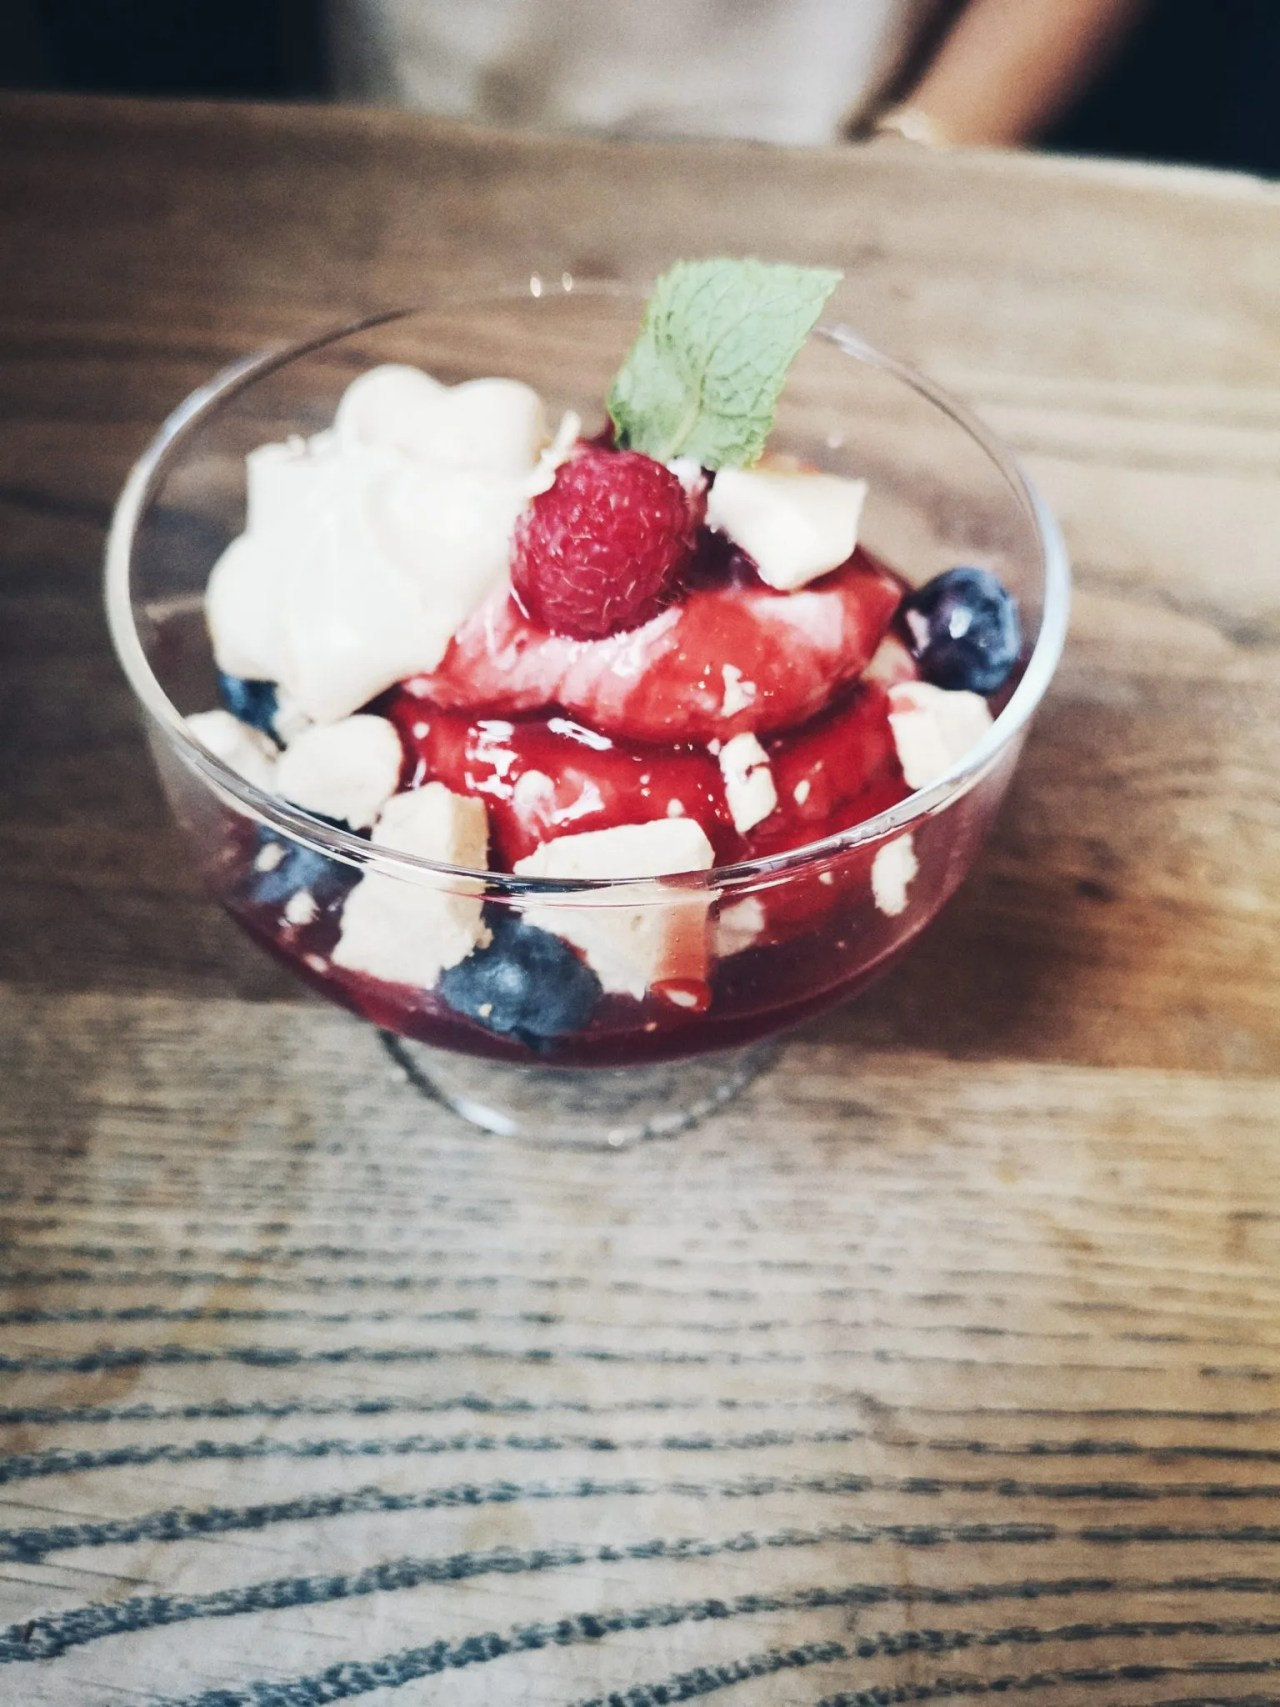 Farmacy Vegan Food - London Food Blogger - The Style of Laura Jane